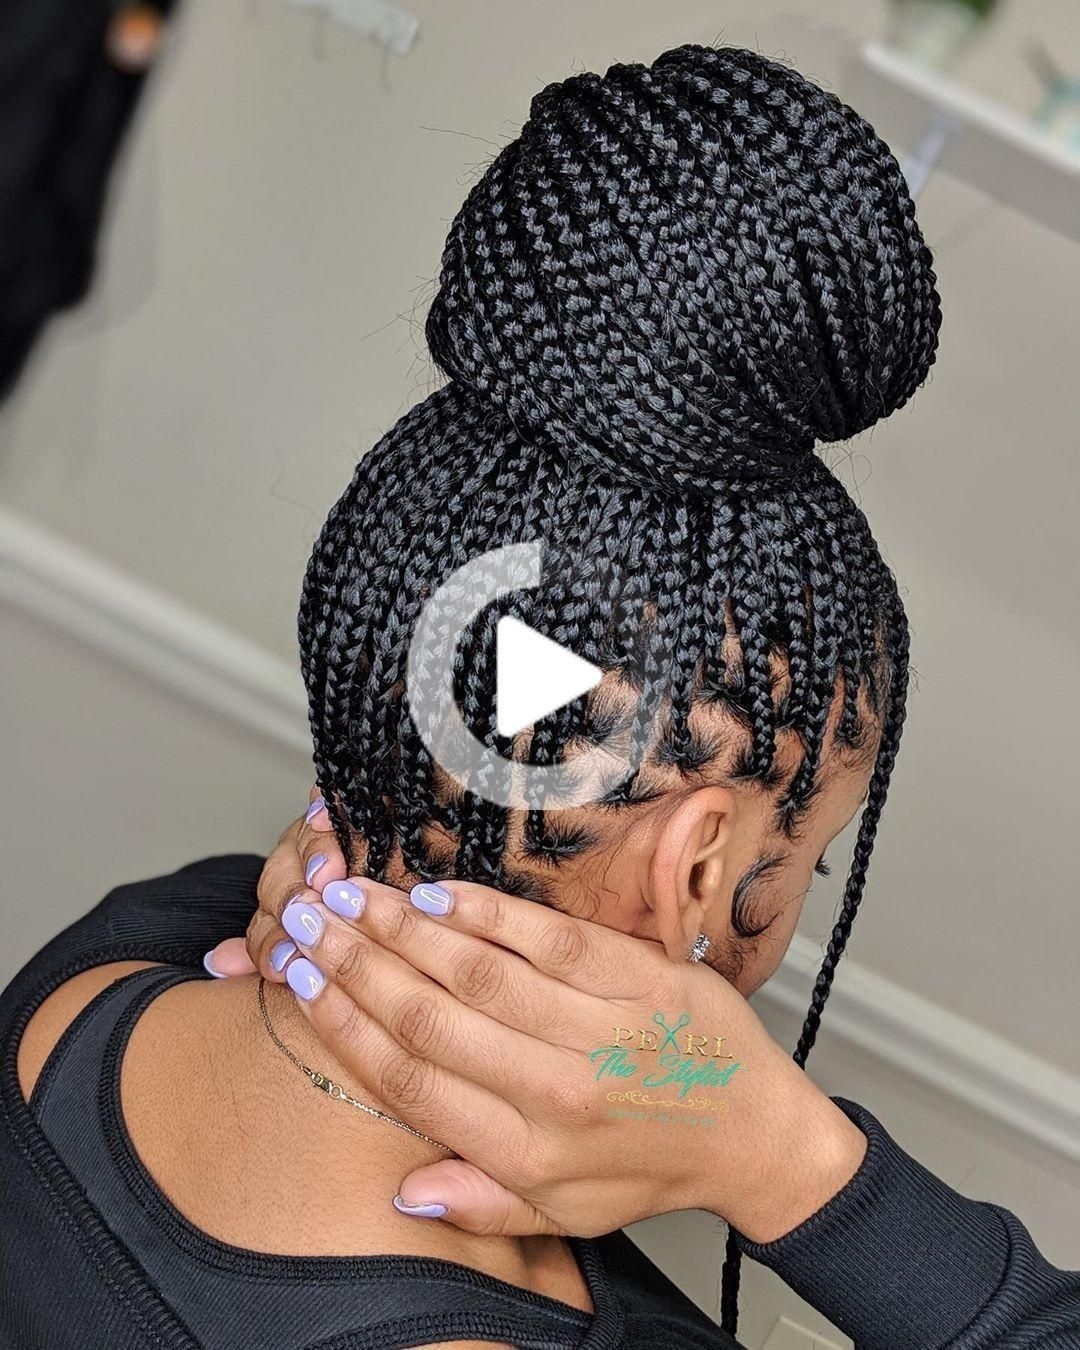 #braided bun hairstyles african american #braided hairstyles over 50 #braided hairstyles bob #black